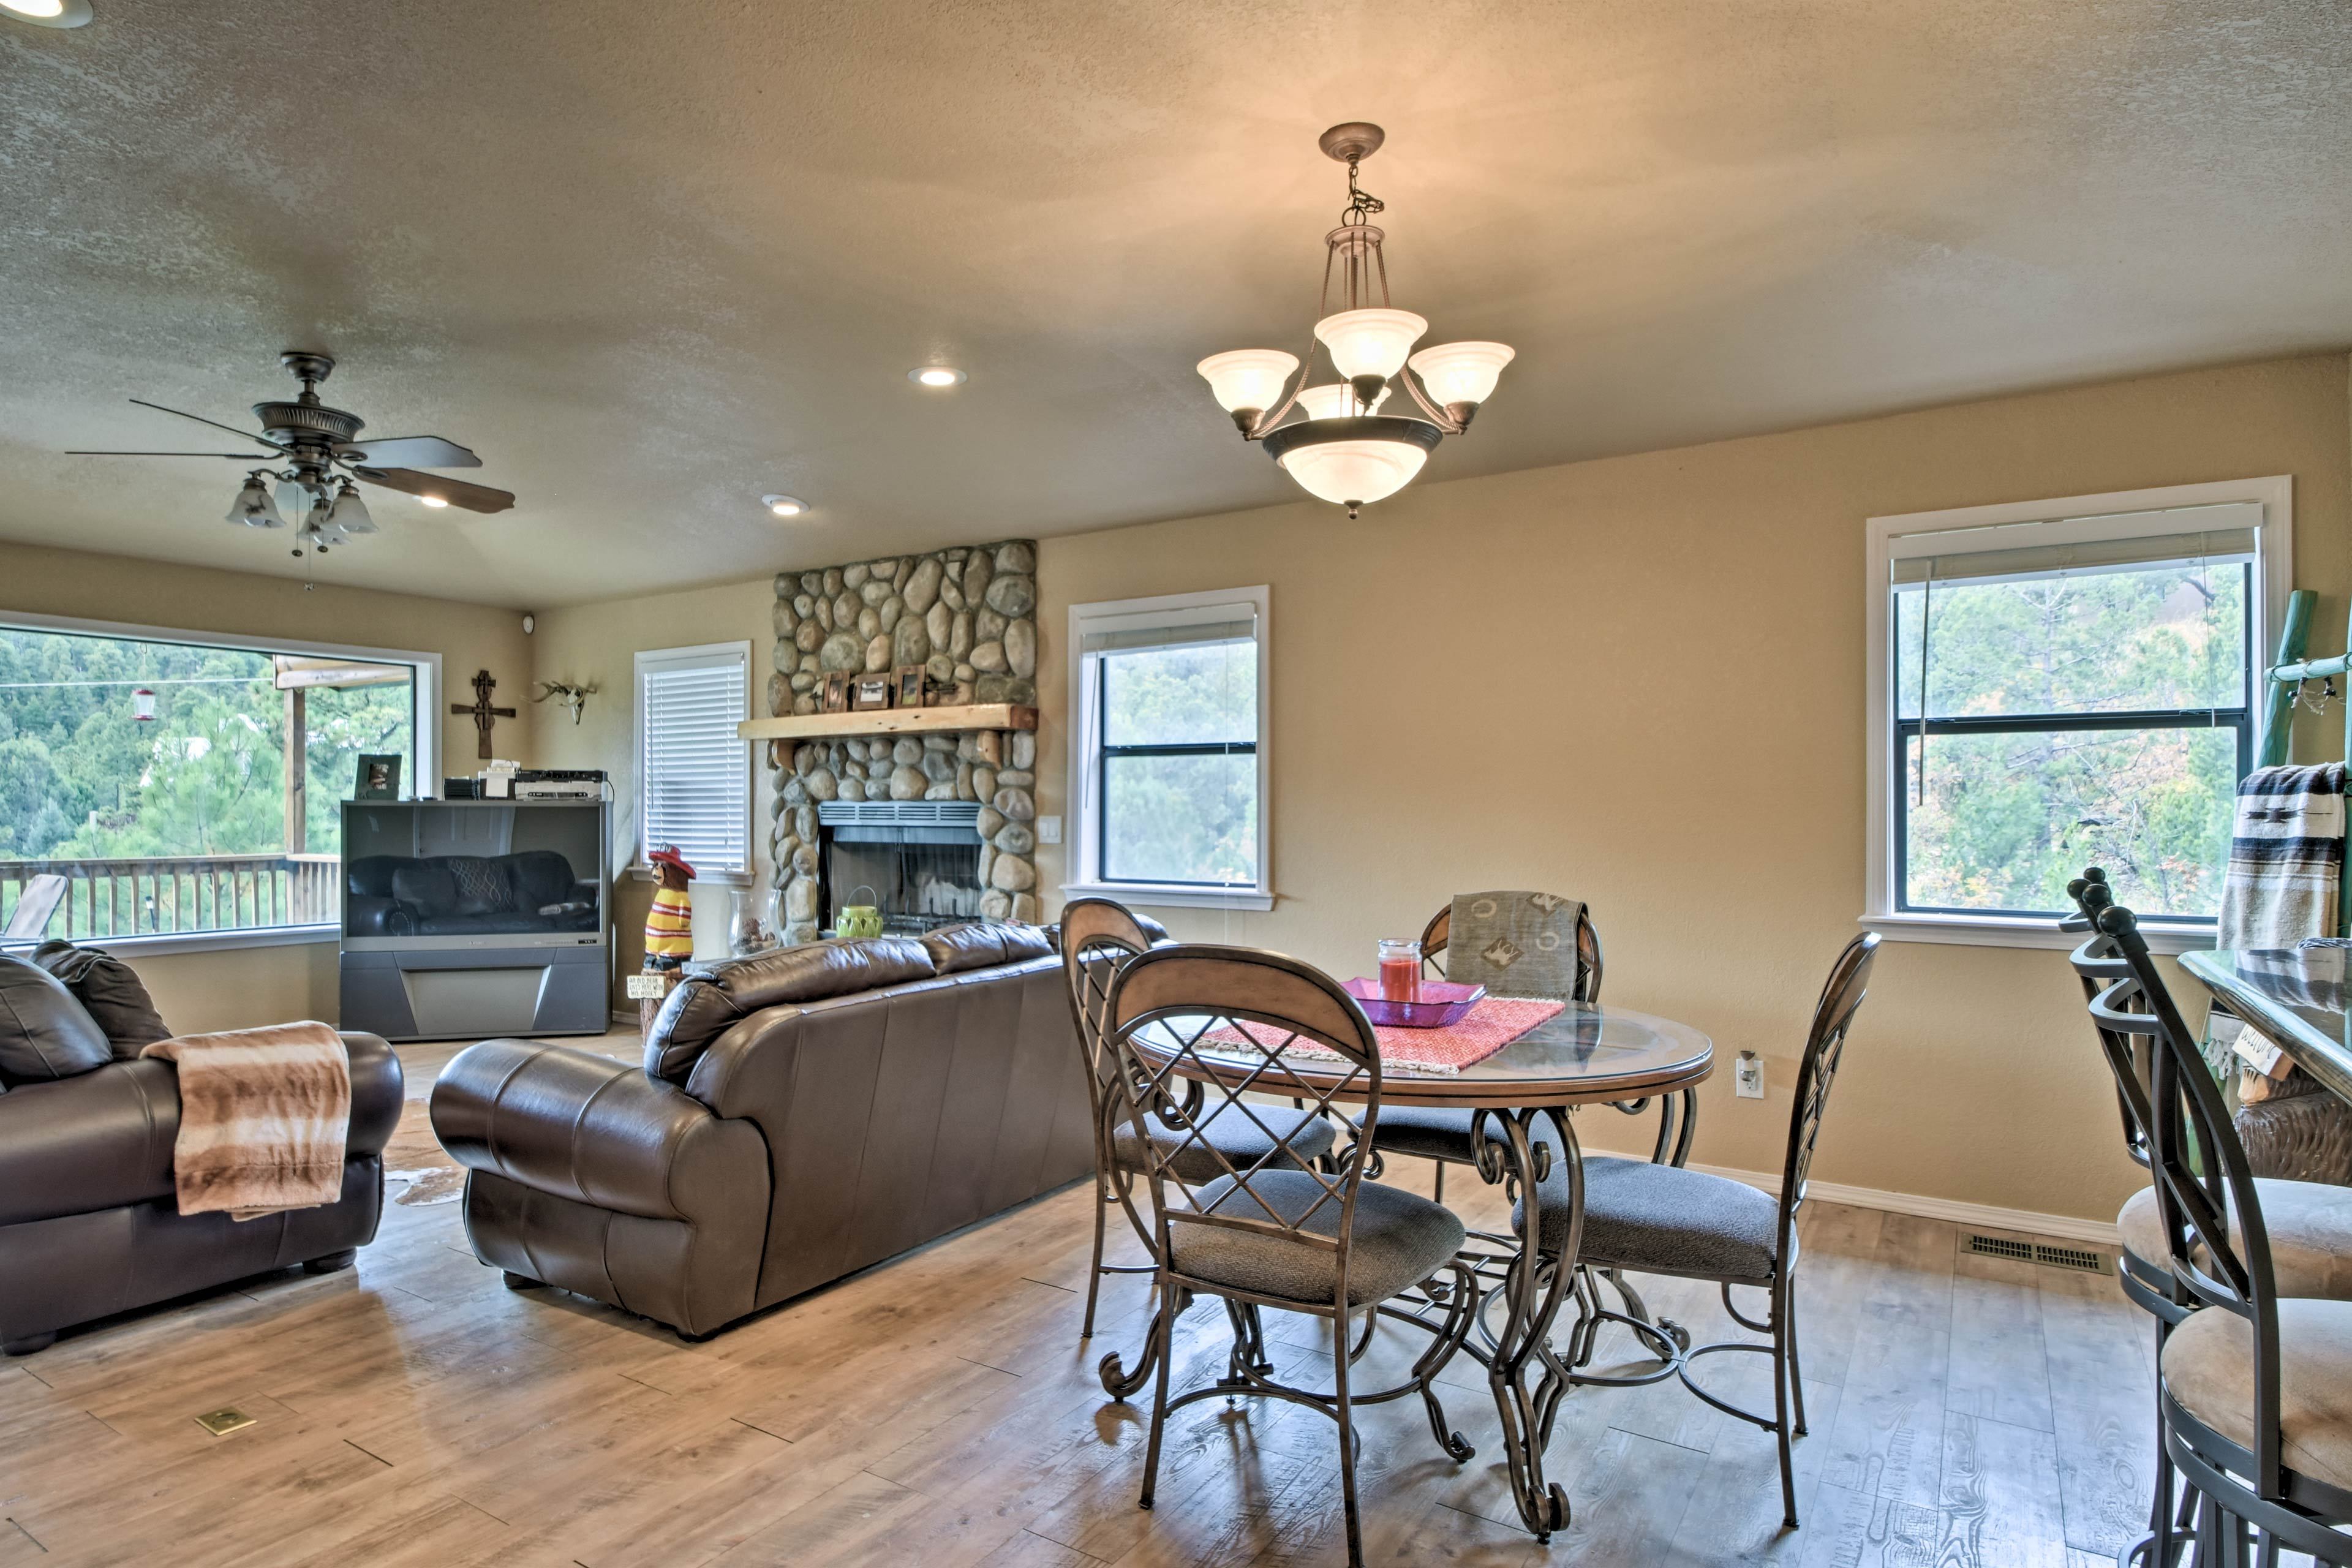 The open layout allows the living room to flow into the kitchen.